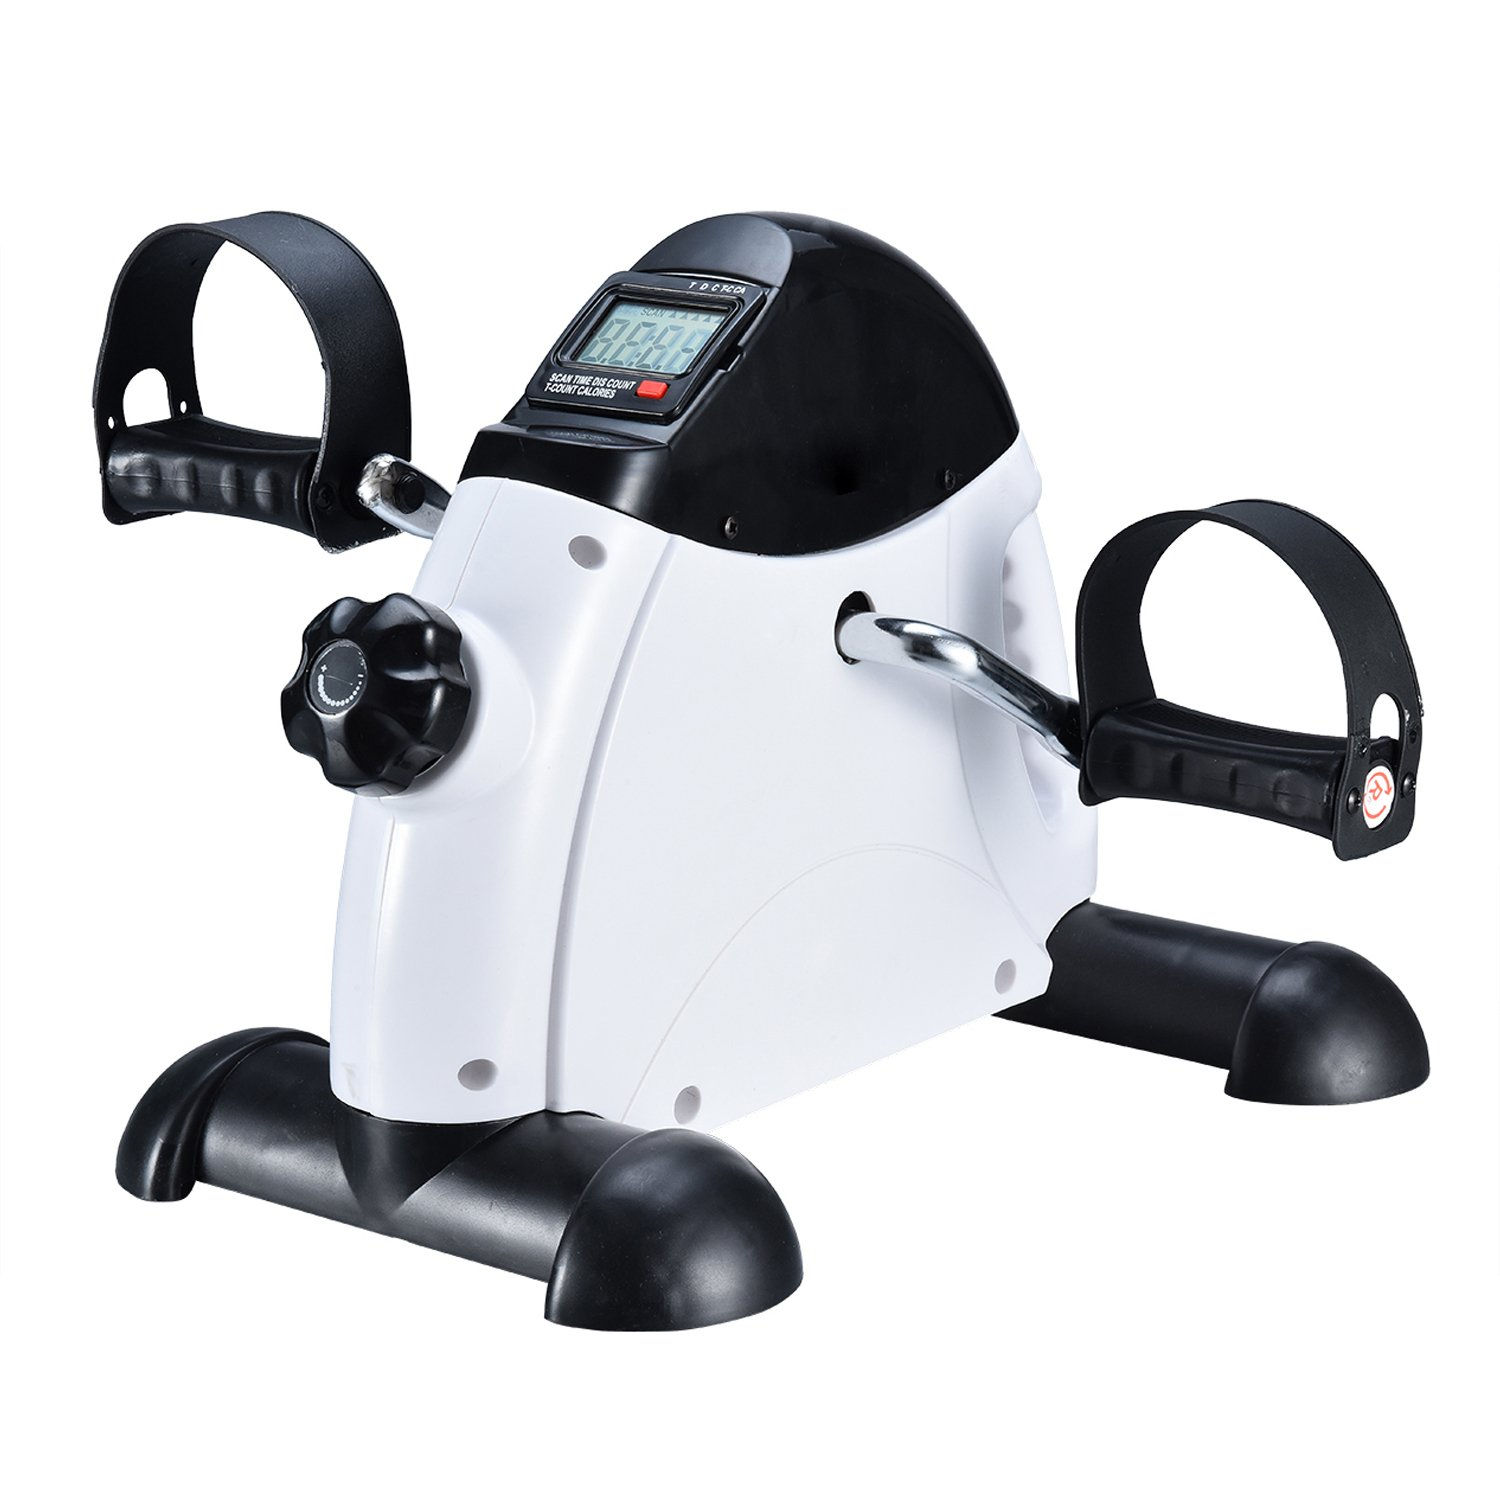 TODO Pedal Exerciser Stationary Medical Peddler with Digital LCD Monitor by TODO